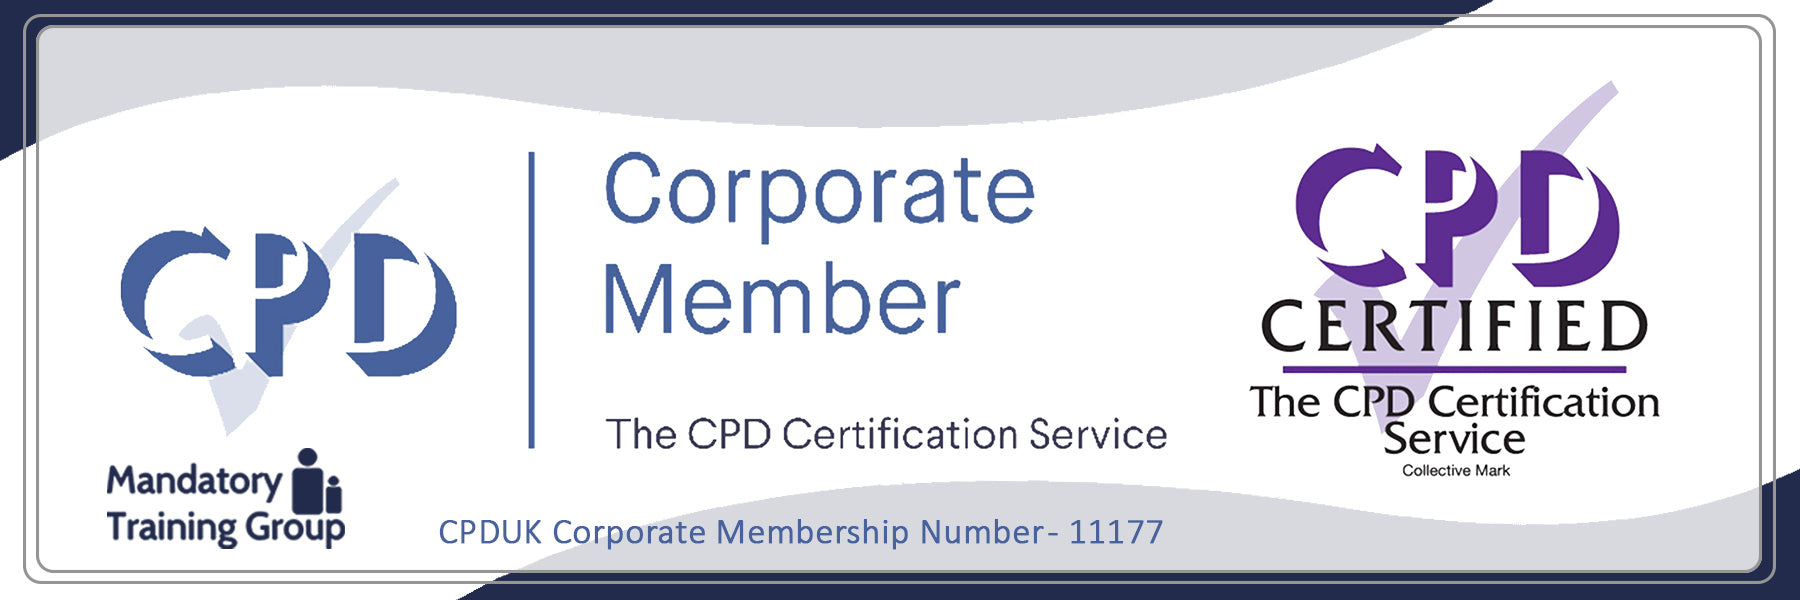 Employment Skills Package - Online CPD Course - The Mandatory Training Group UK -